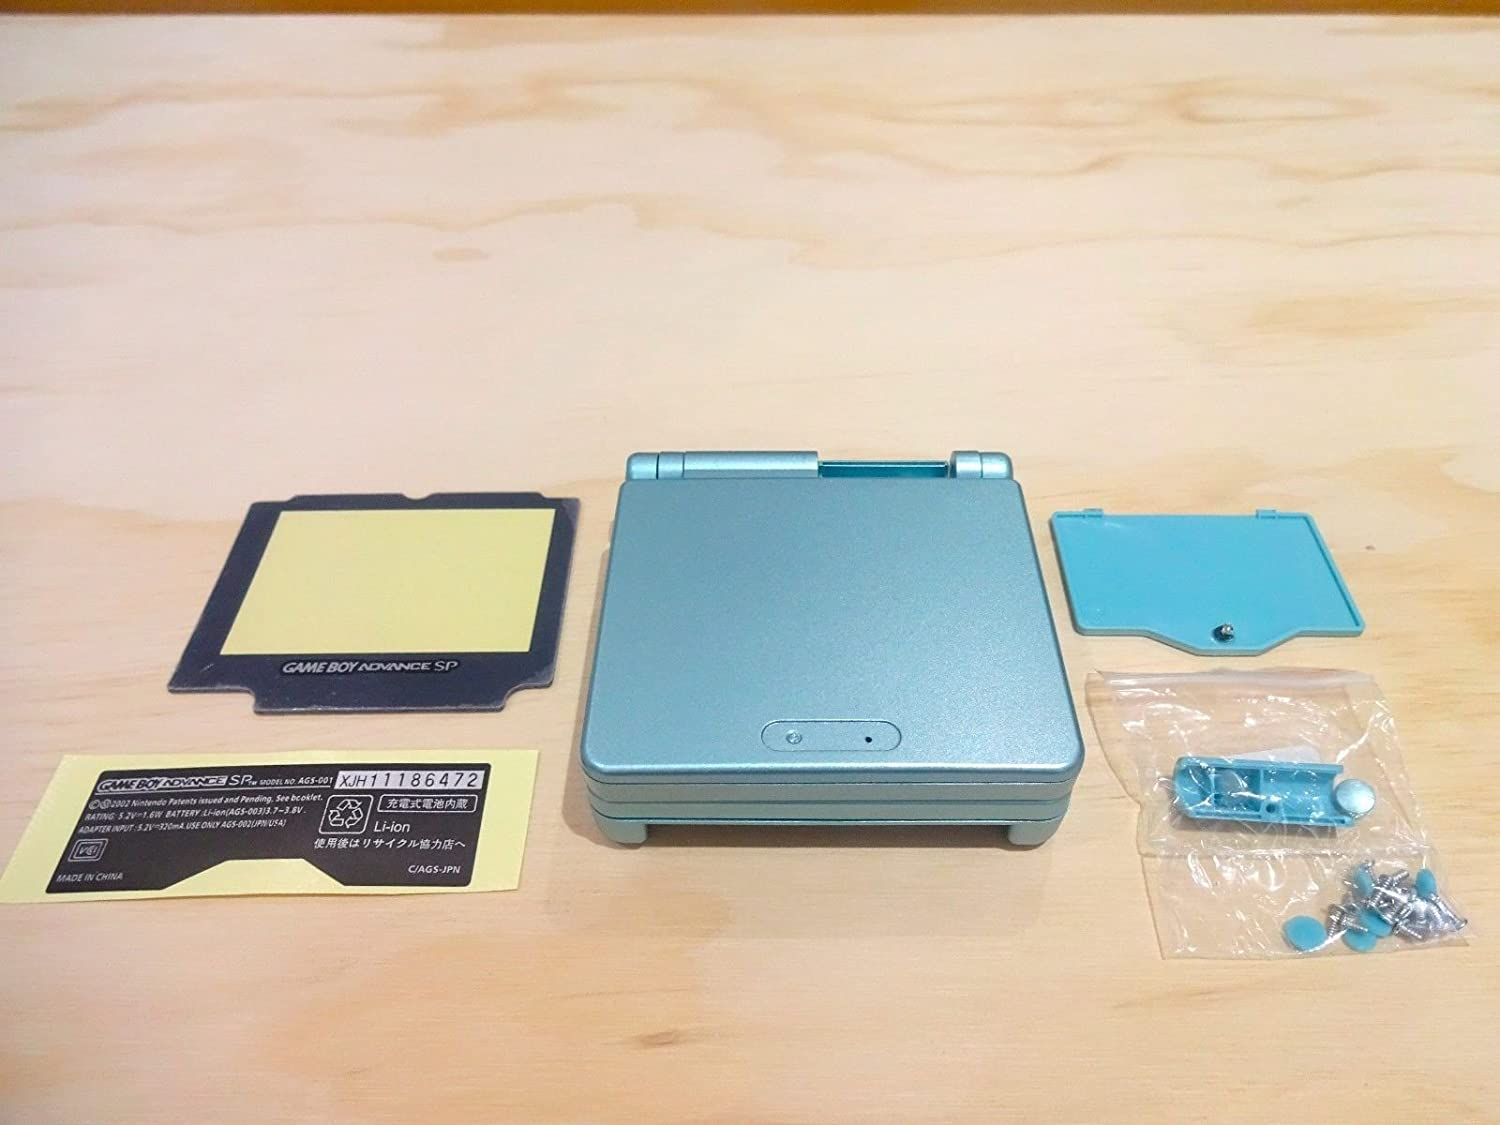 Full Housing Shell Case Cover Replacement for Nintendo GBA SP Gameboy Advance SP -Light Blue